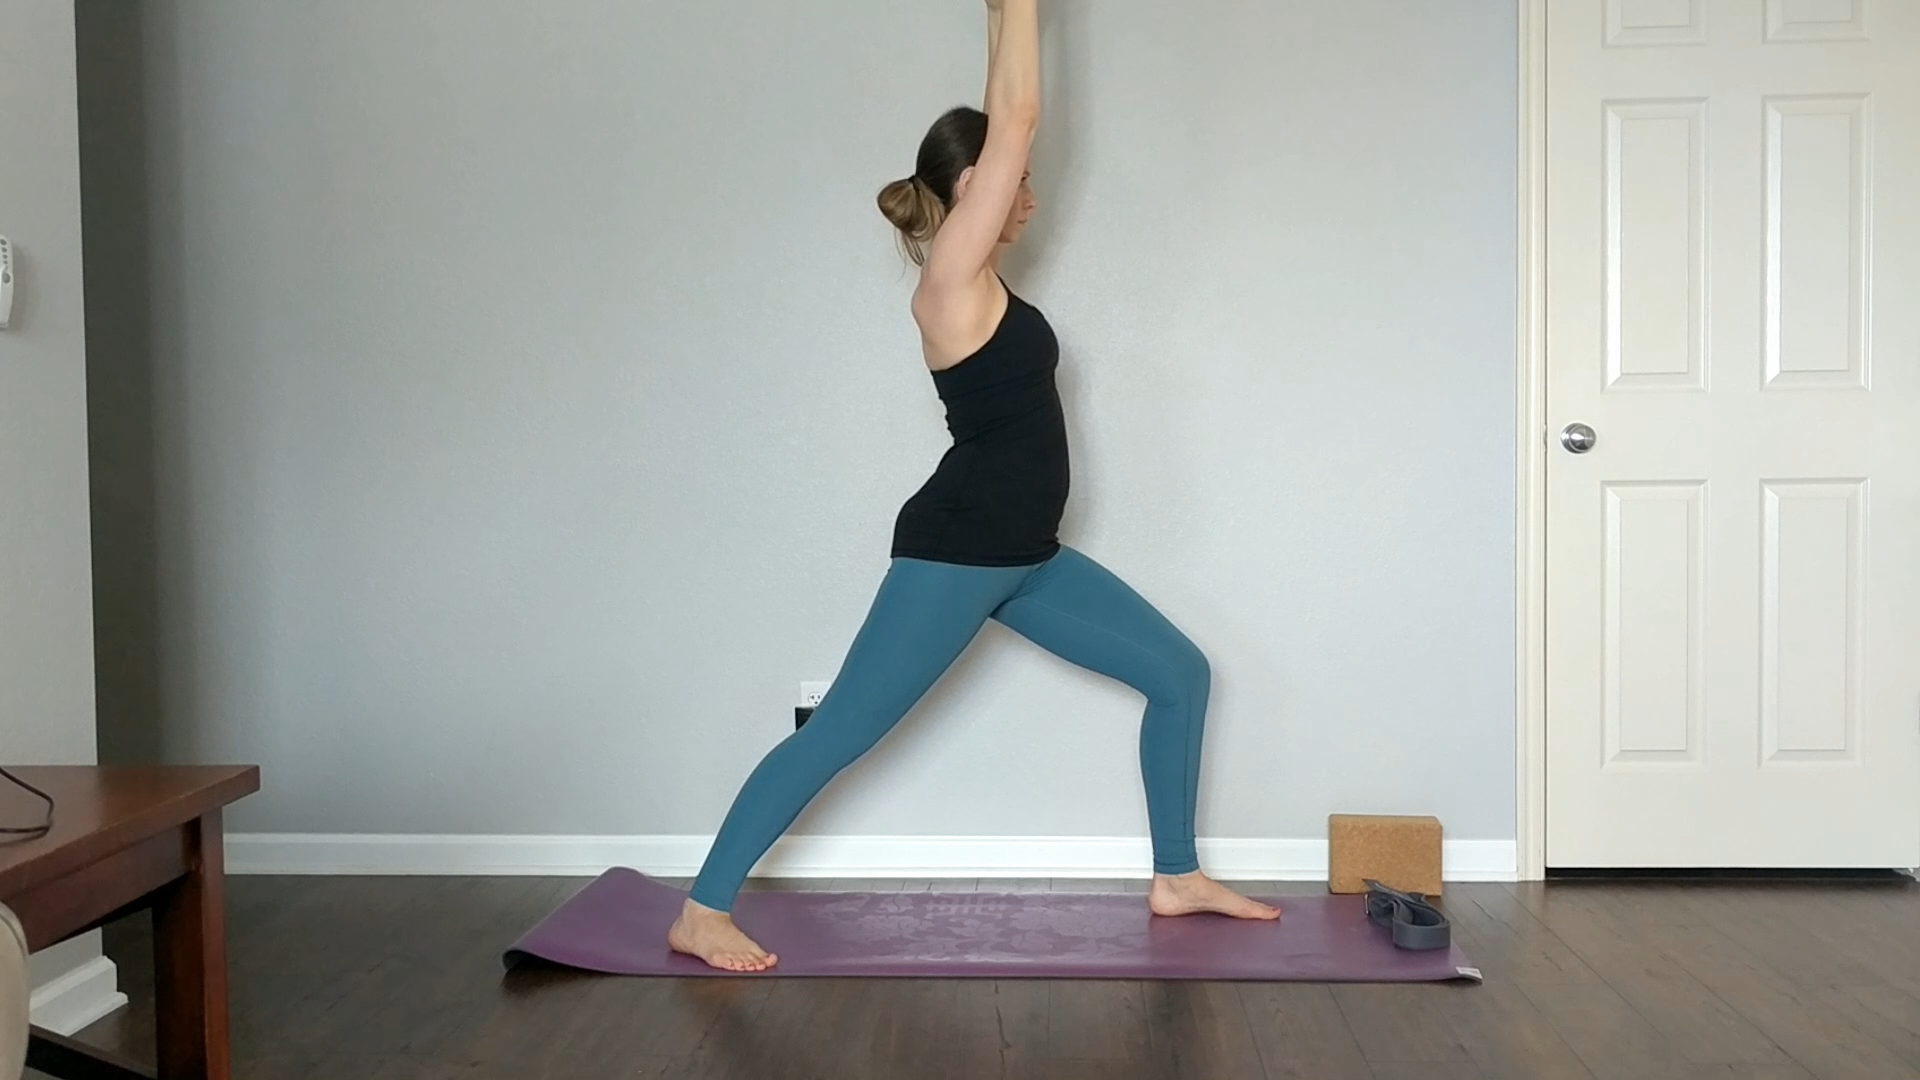 Calf Stretches! Yoga Poses for Tight Calves: Five great yoga poses to help you stretch out your calves. Perfect for runners or anyone with tight calf muscles!